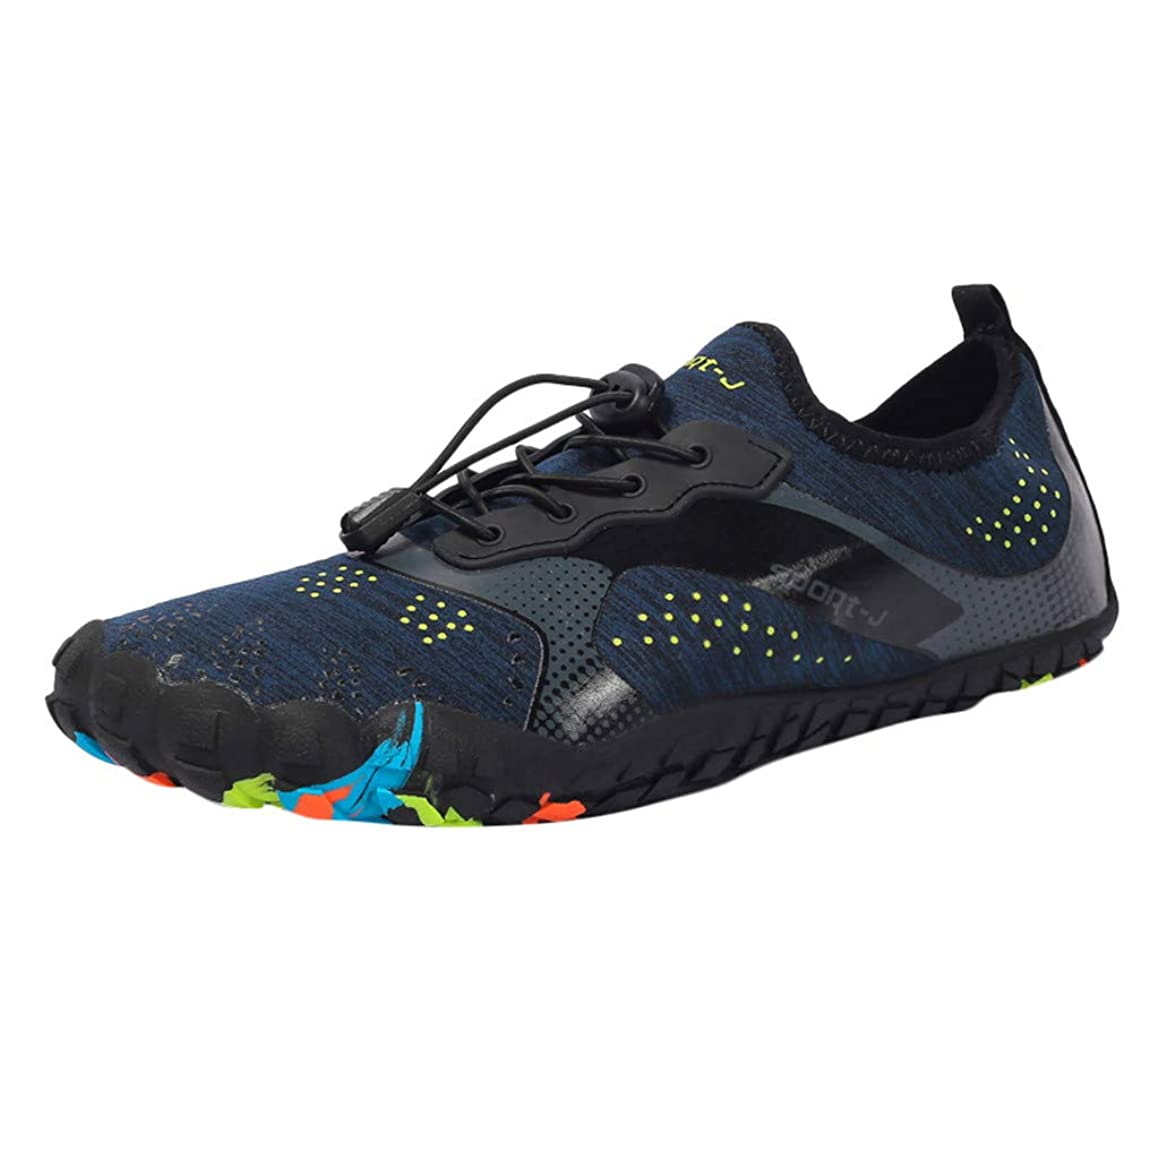 Outique Surf Pool Walking Yoga Shoes,Unisex Quick-Dry Water Shoes Toe Sport Beach Swim Drawstring Creek Diving Shoes